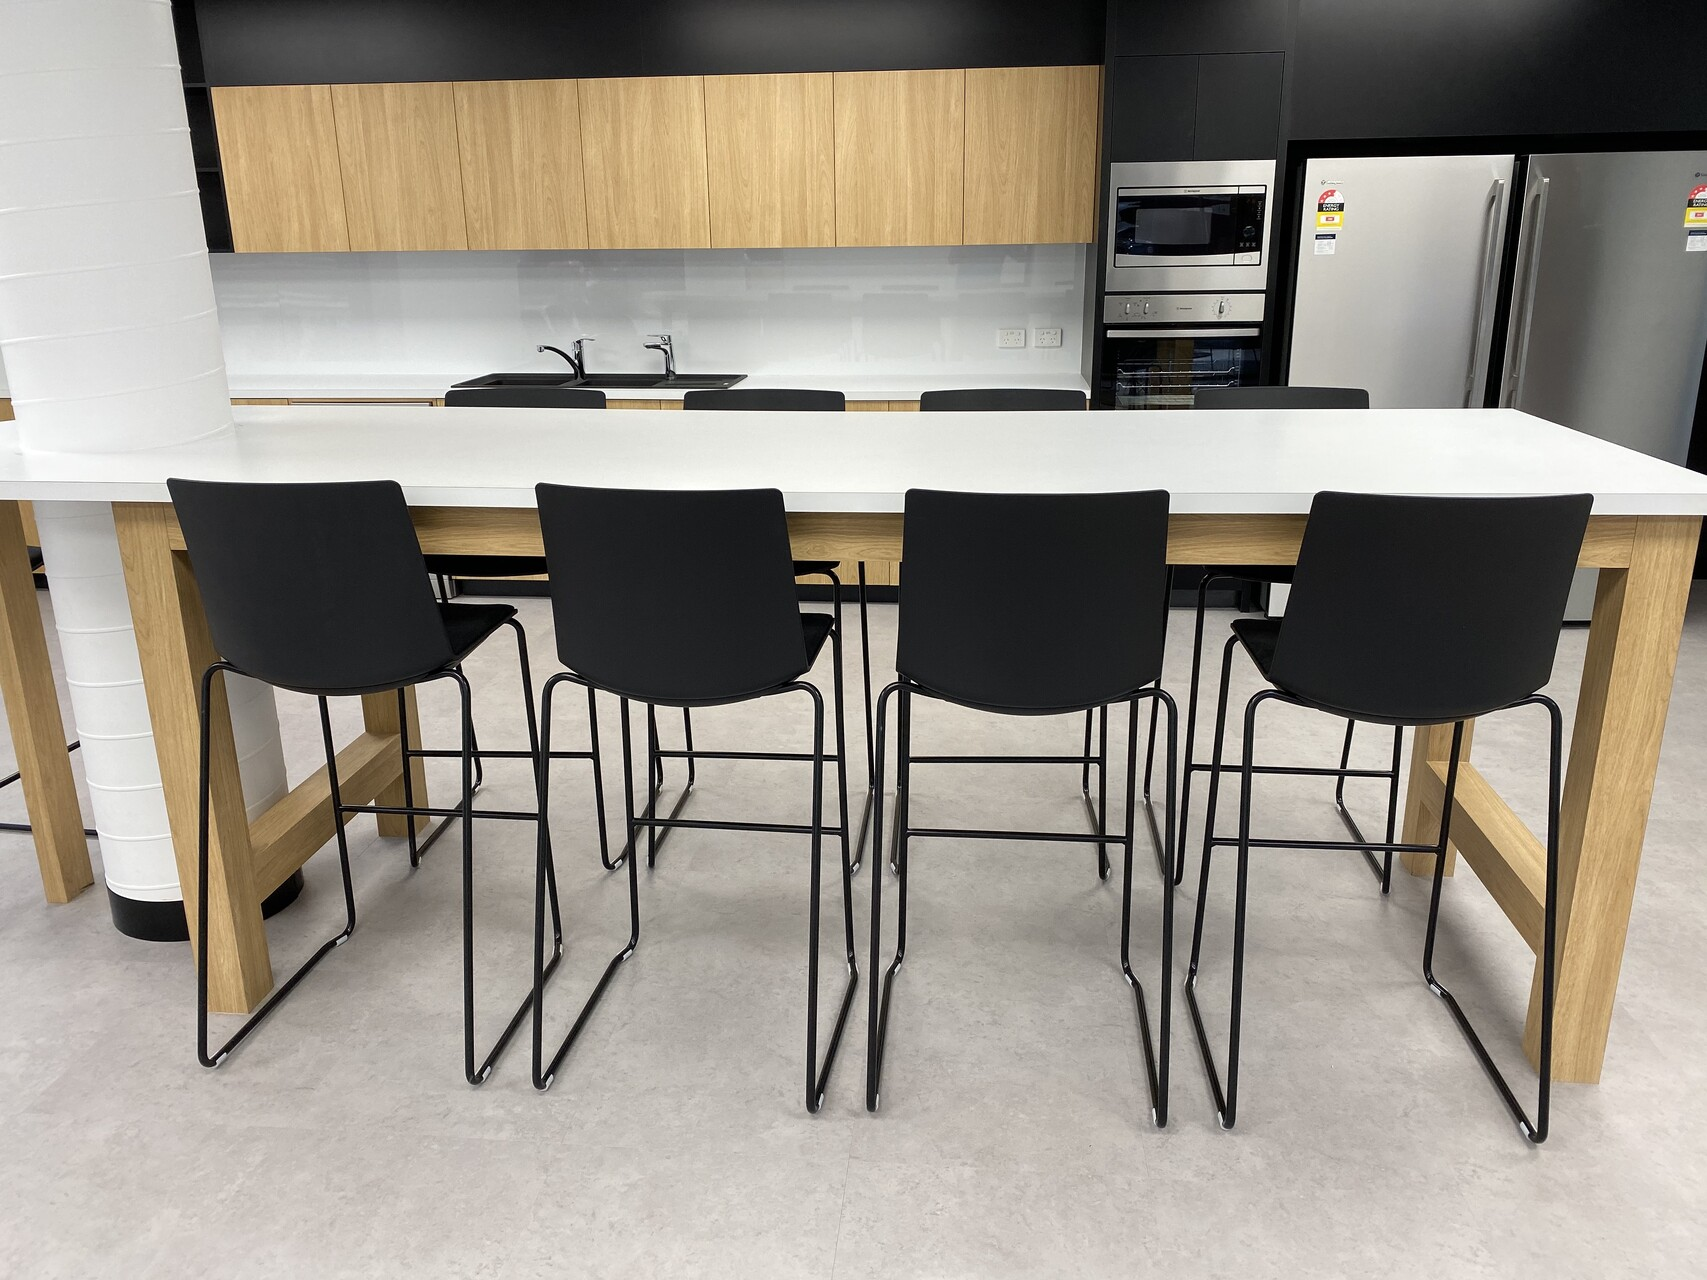 IMG_20191119_123109 kitchen dining table and chairs home office furniture darwin